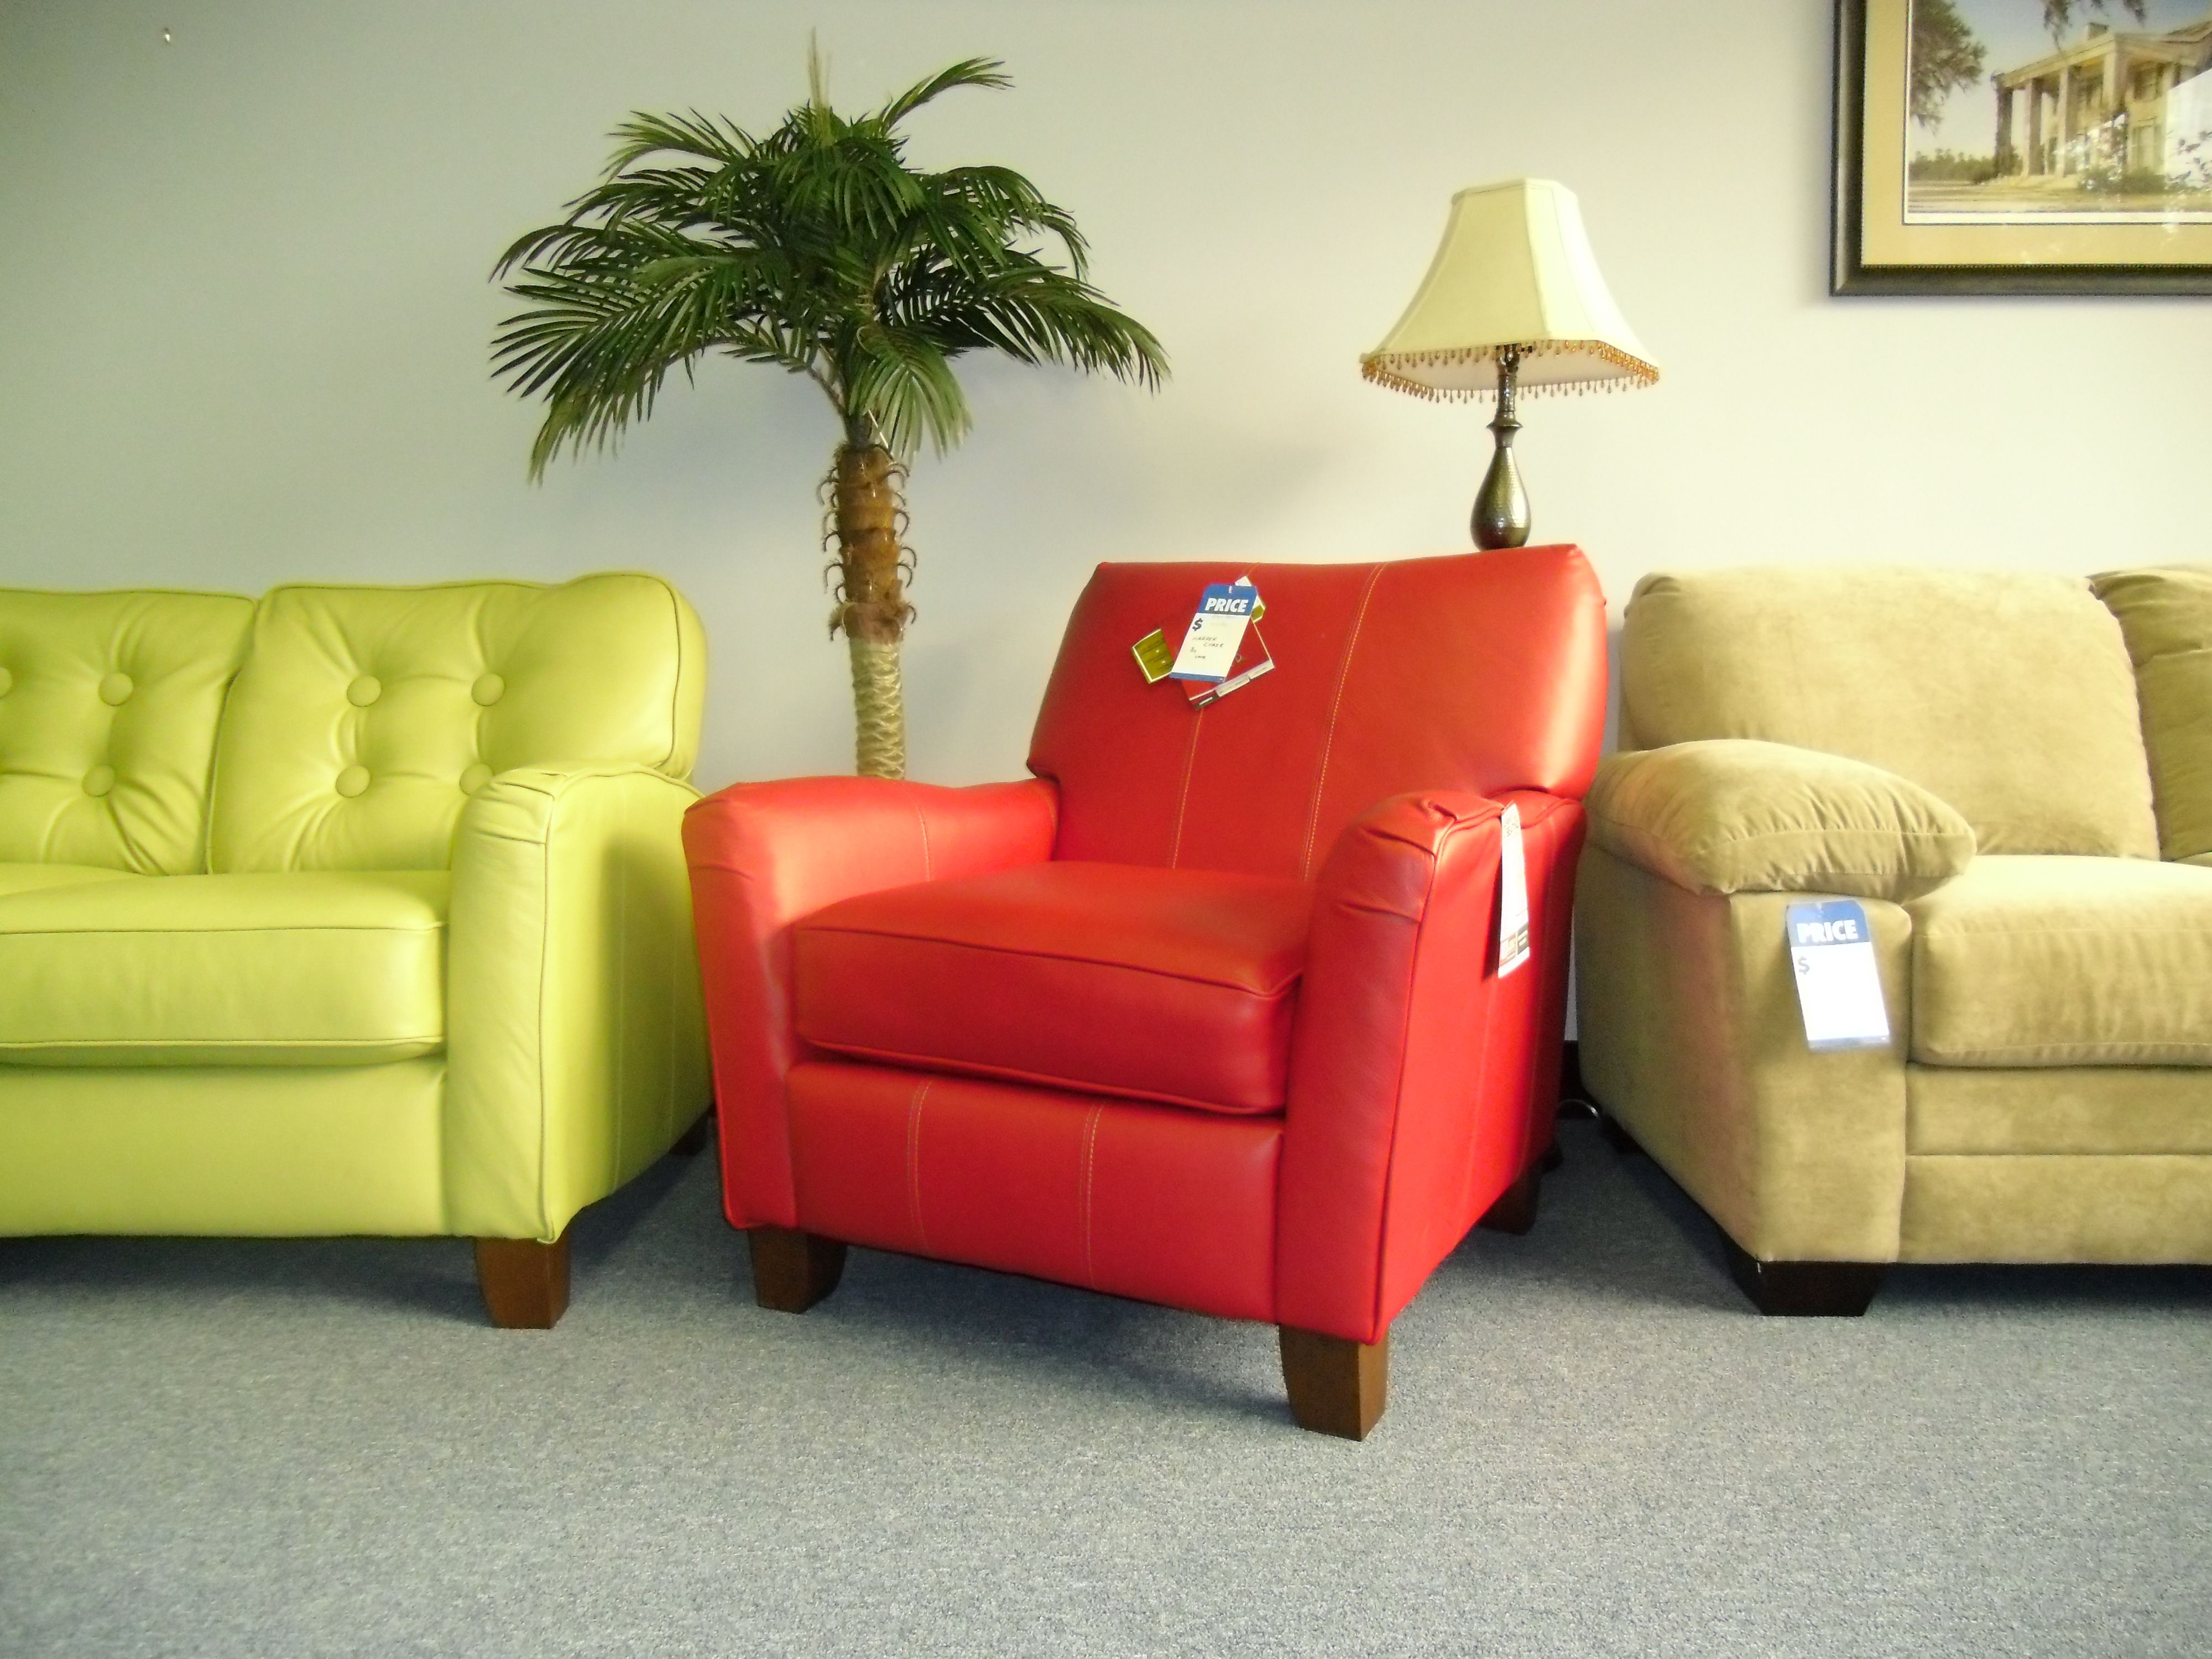 Bright Green Orange Red Neon Leather Furniture By Lane Home Furnishings Available At My